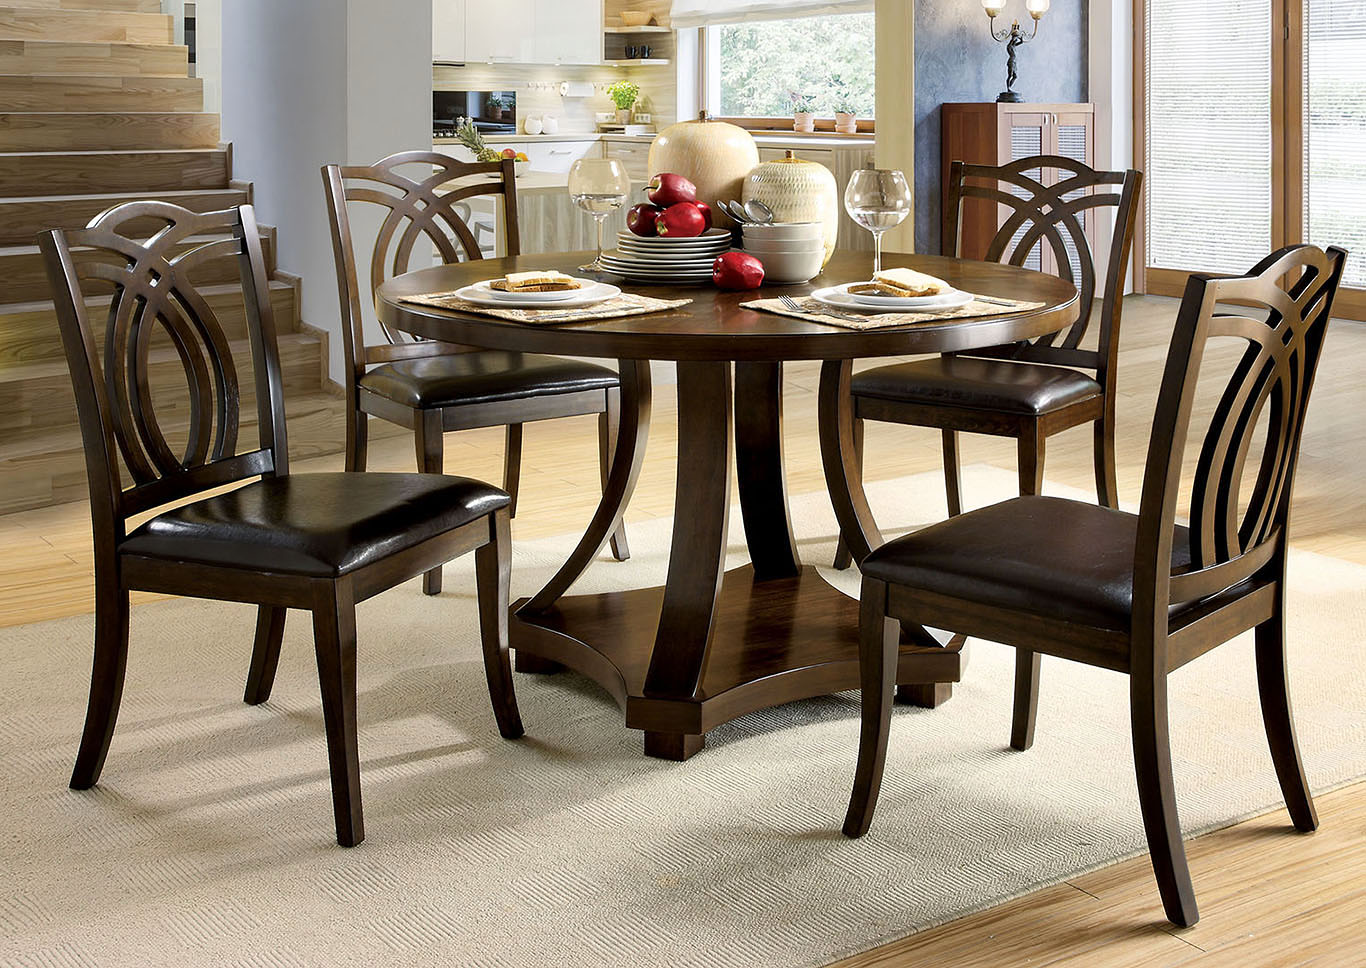 dark walnut dining chairs office chair new zealand ocean cabinetry and furniture keukenhof round